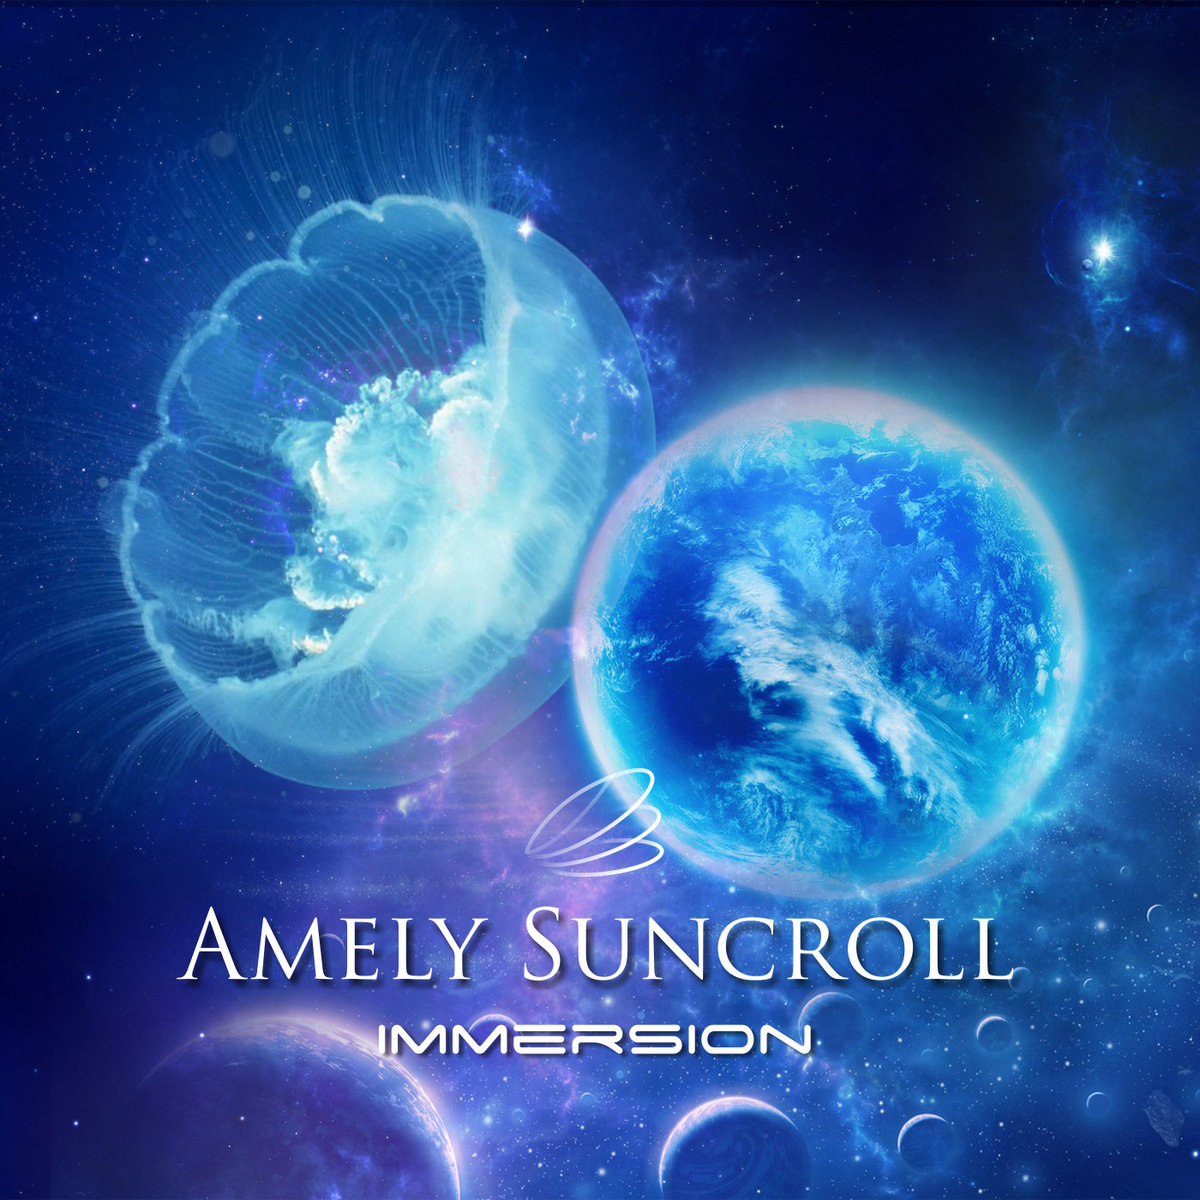 Amely Suncroll - Immersion